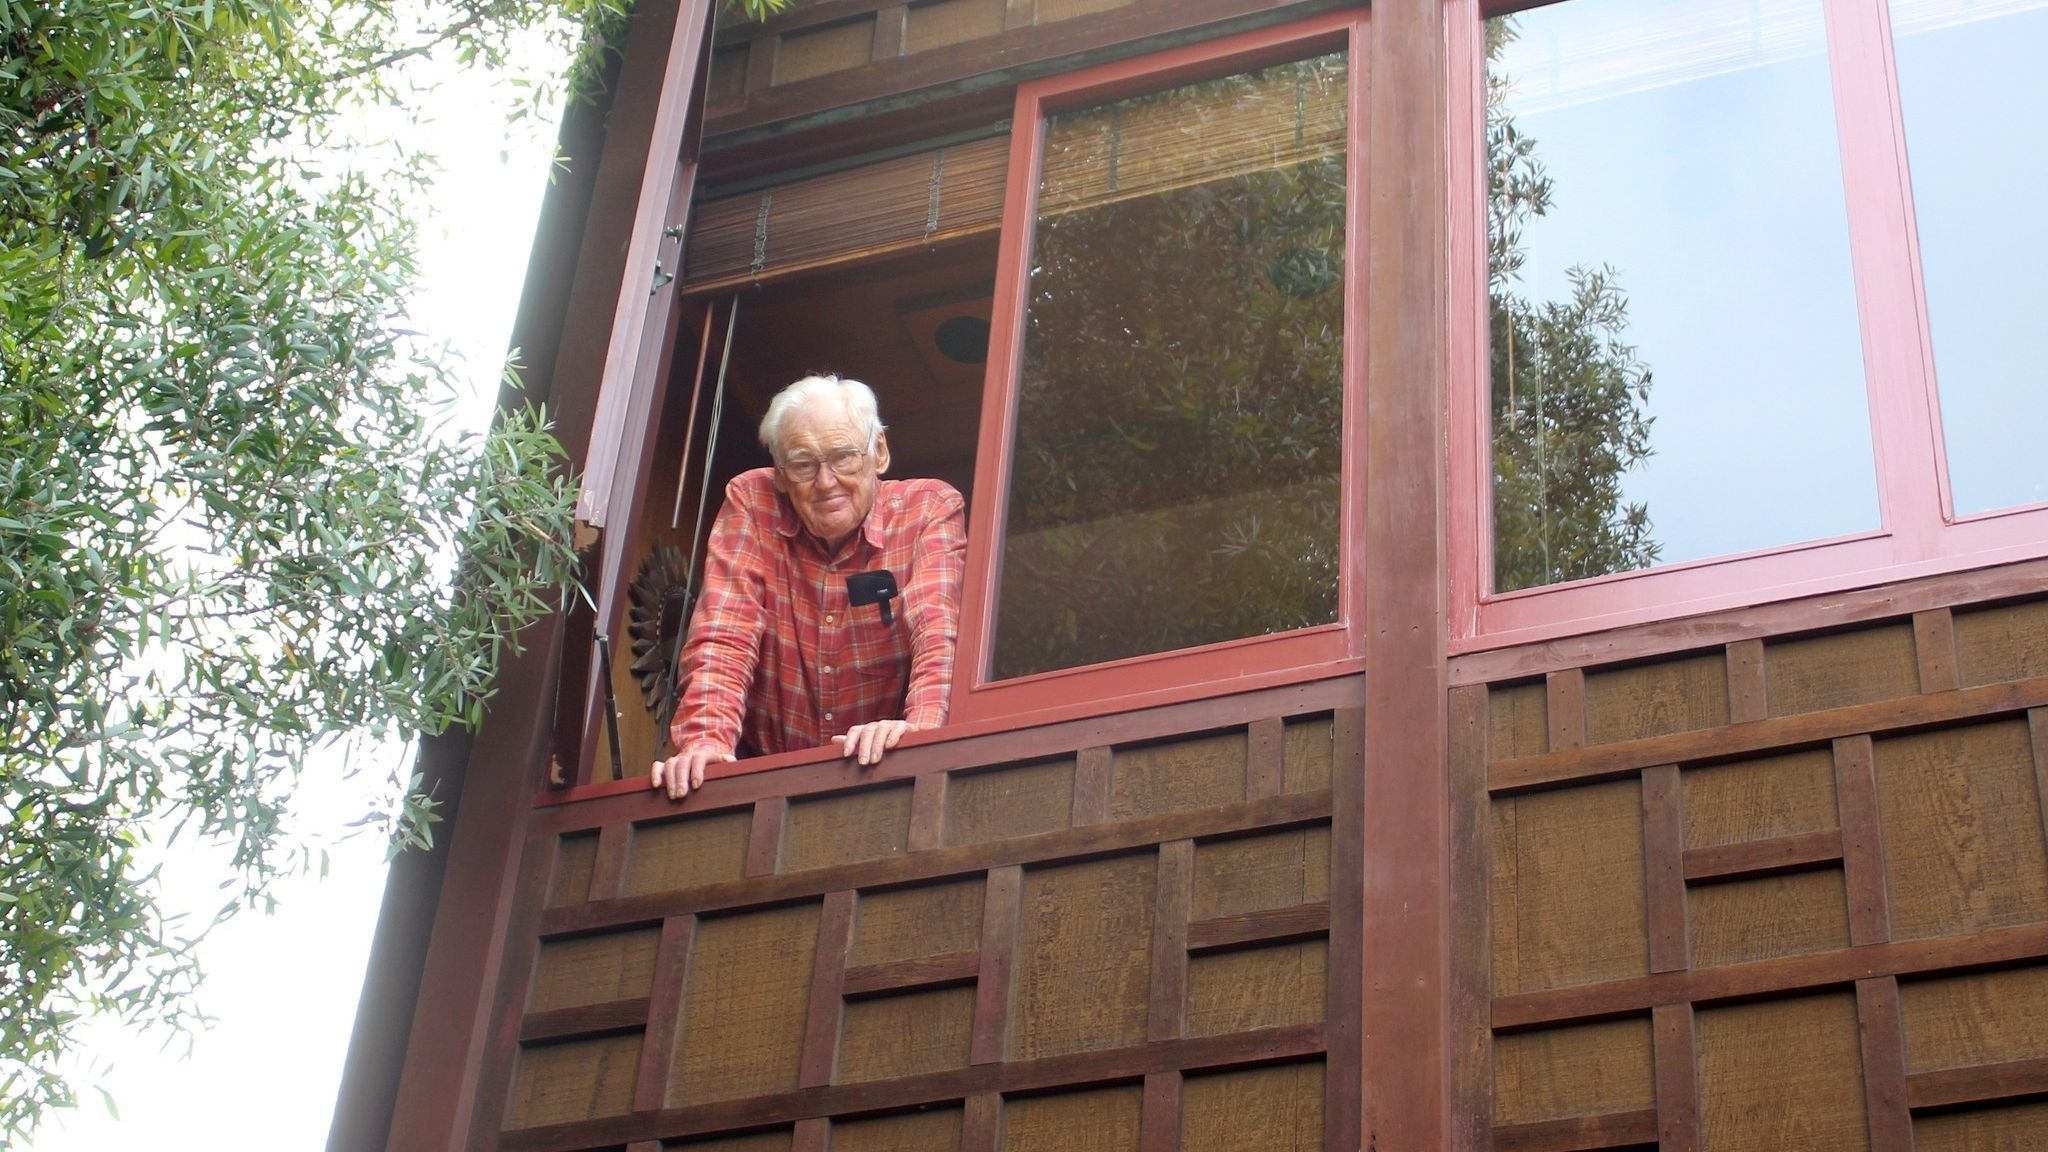 Harry Crosby greats the 'Light' from the window of the La Jolla house he designed and built in 1979.